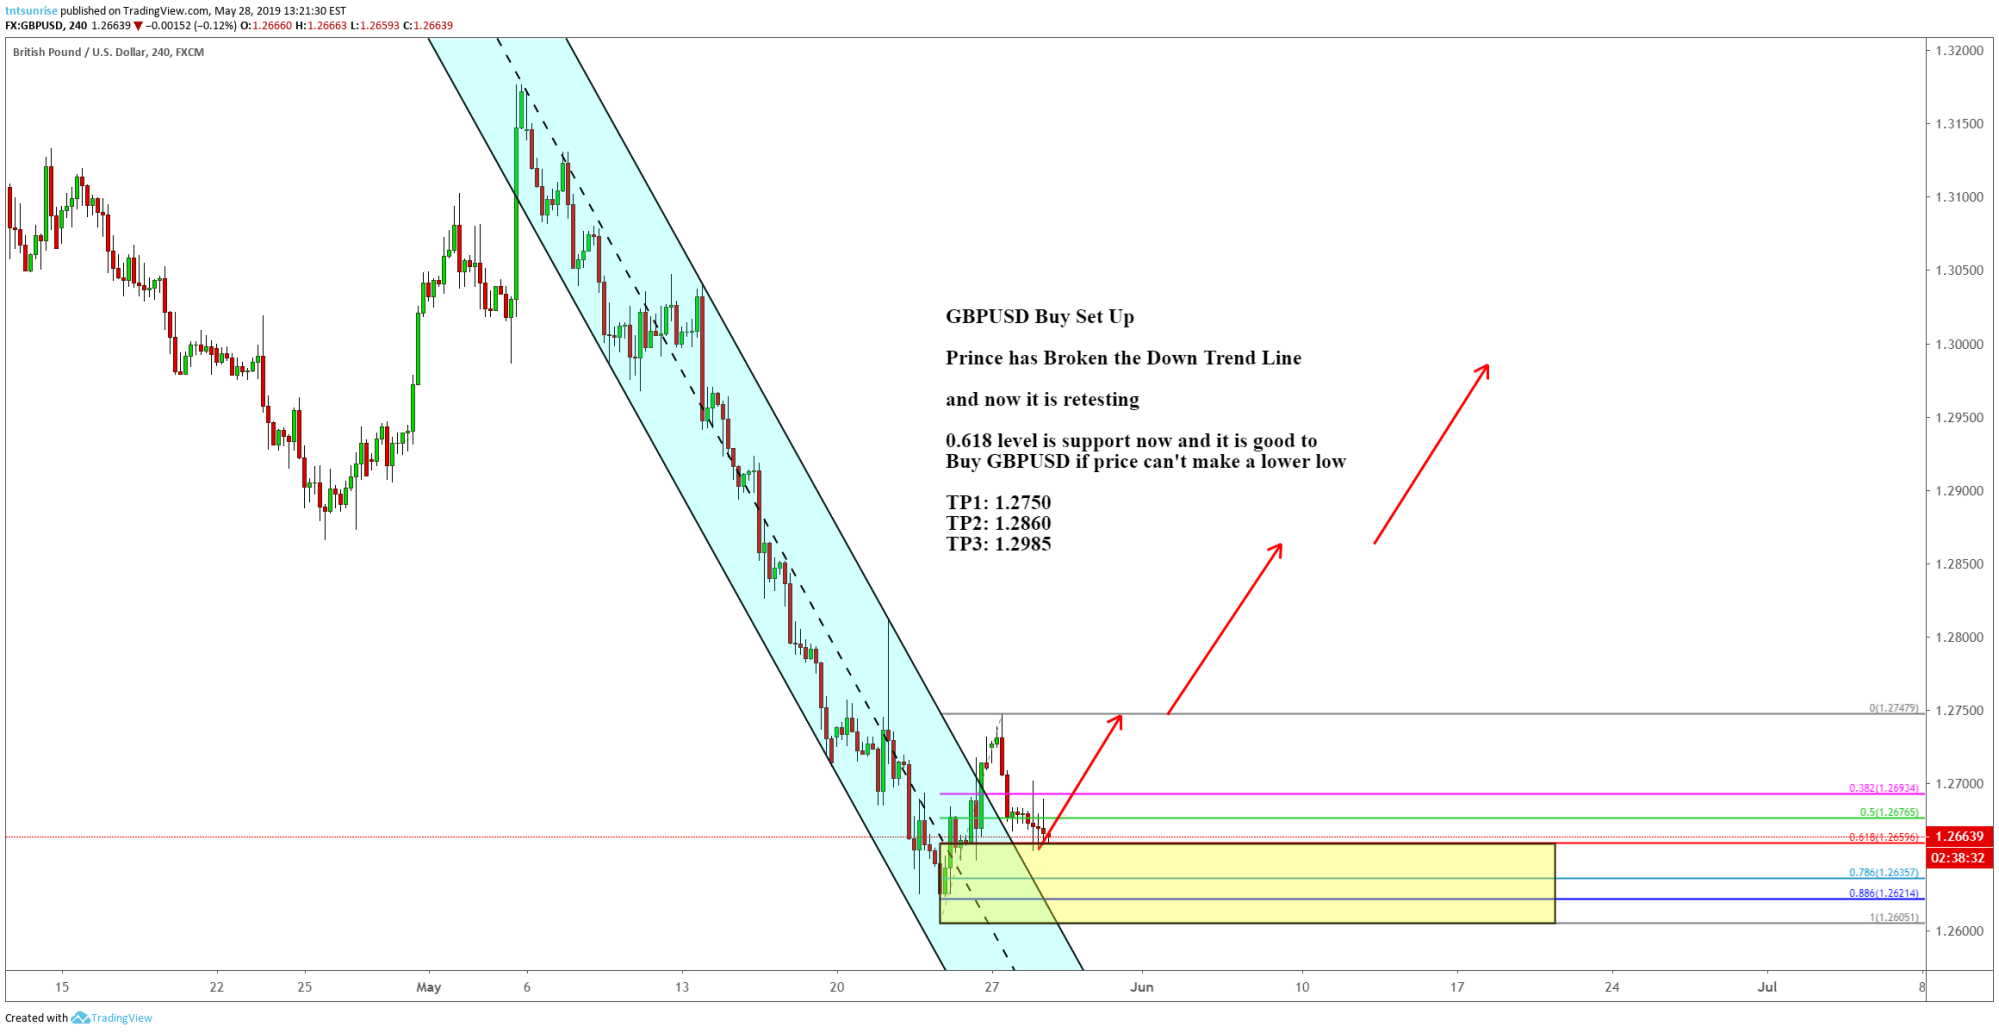 hight resolution of gbpusd buy set up with channel broken and 618 pull back for fx gbpusd by tntsunrise tradingview